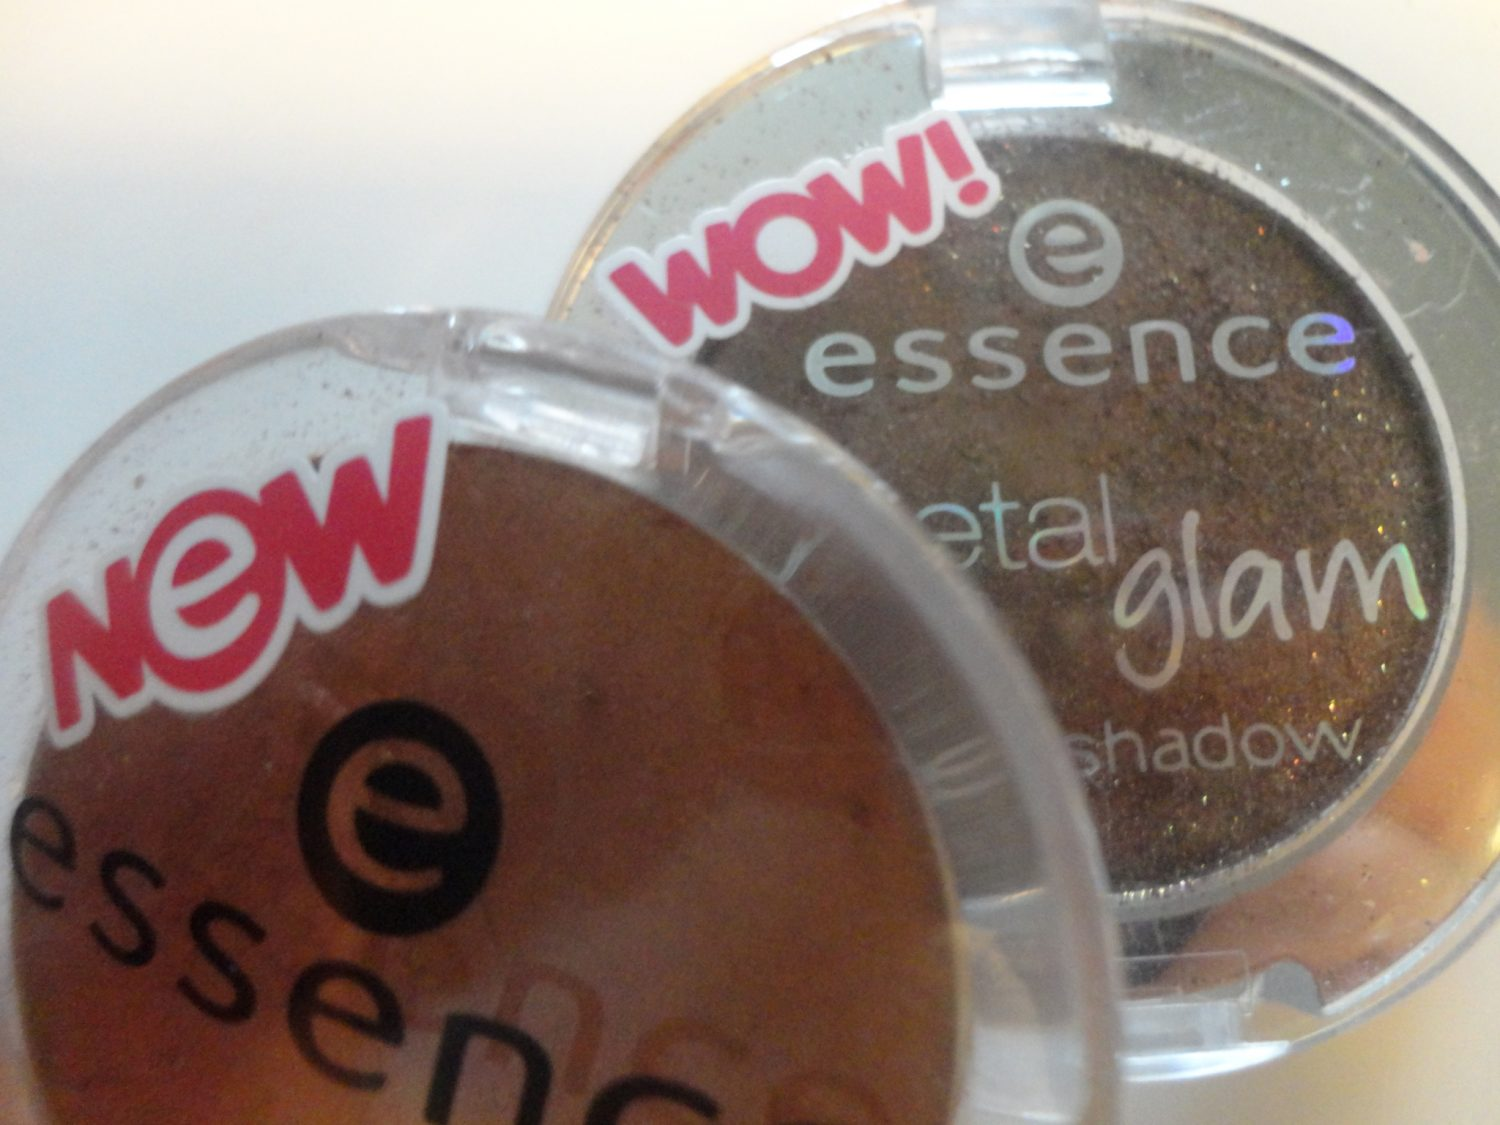 Essence eyeshadow en metal glam